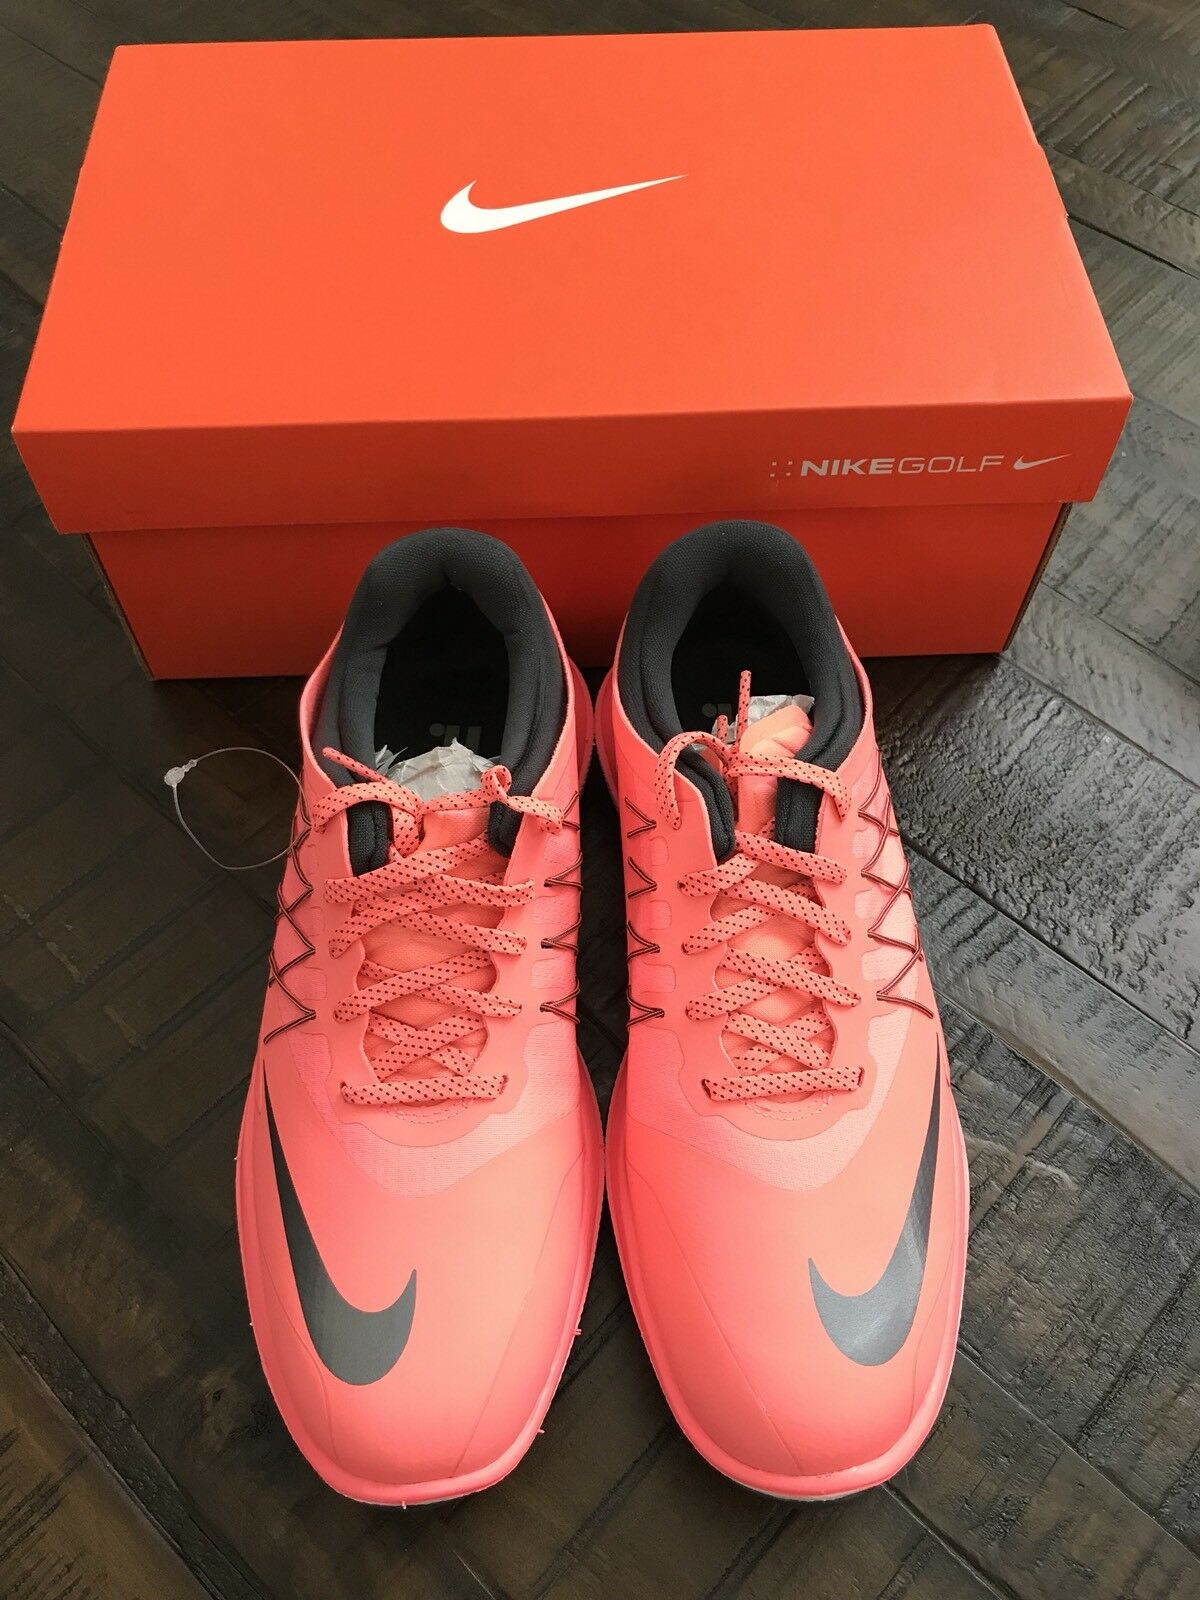 Nike Women's Lunar Control Vapor Golf Shoes Pink Lava Glow Cool Grey - 849979